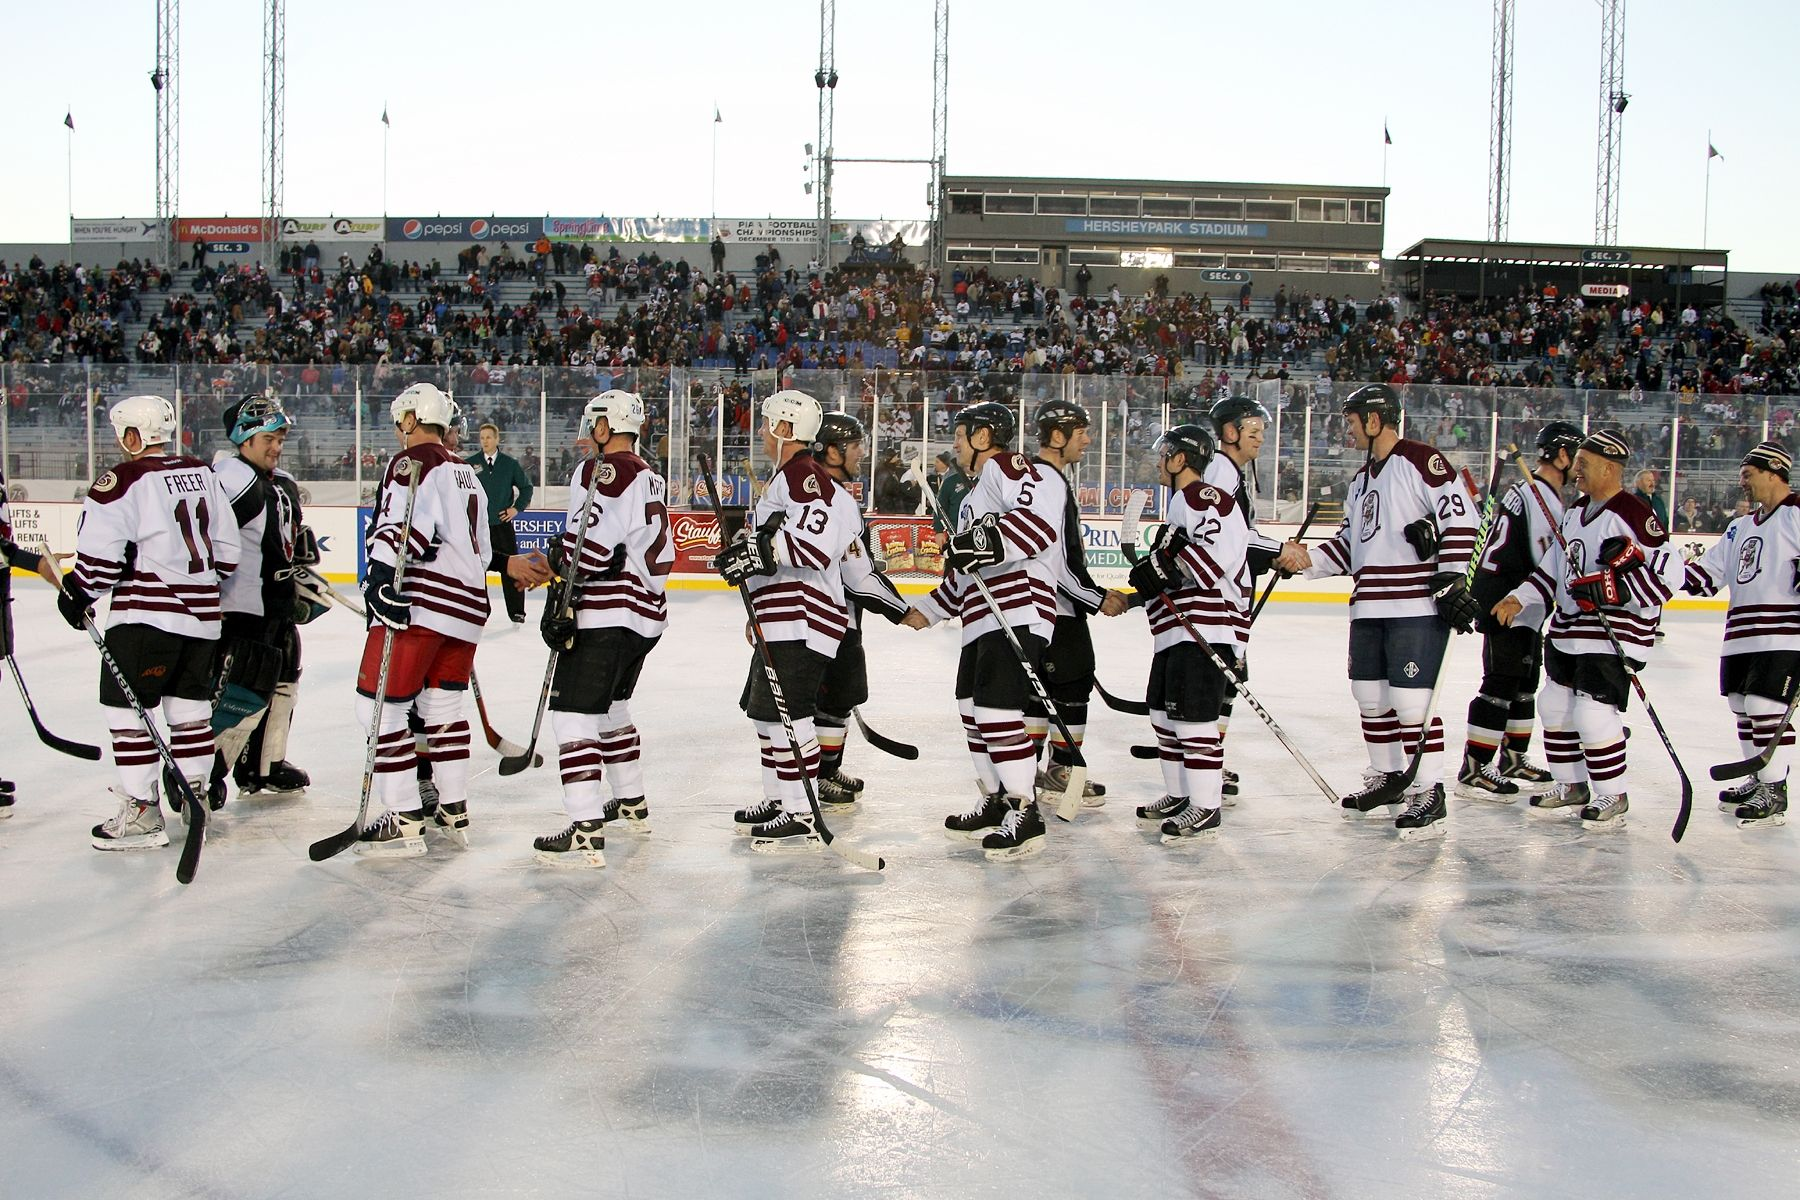 1.19.13 - post game hand shake from Bears and Penguins.  Photo Courtesy of JustSports Photography